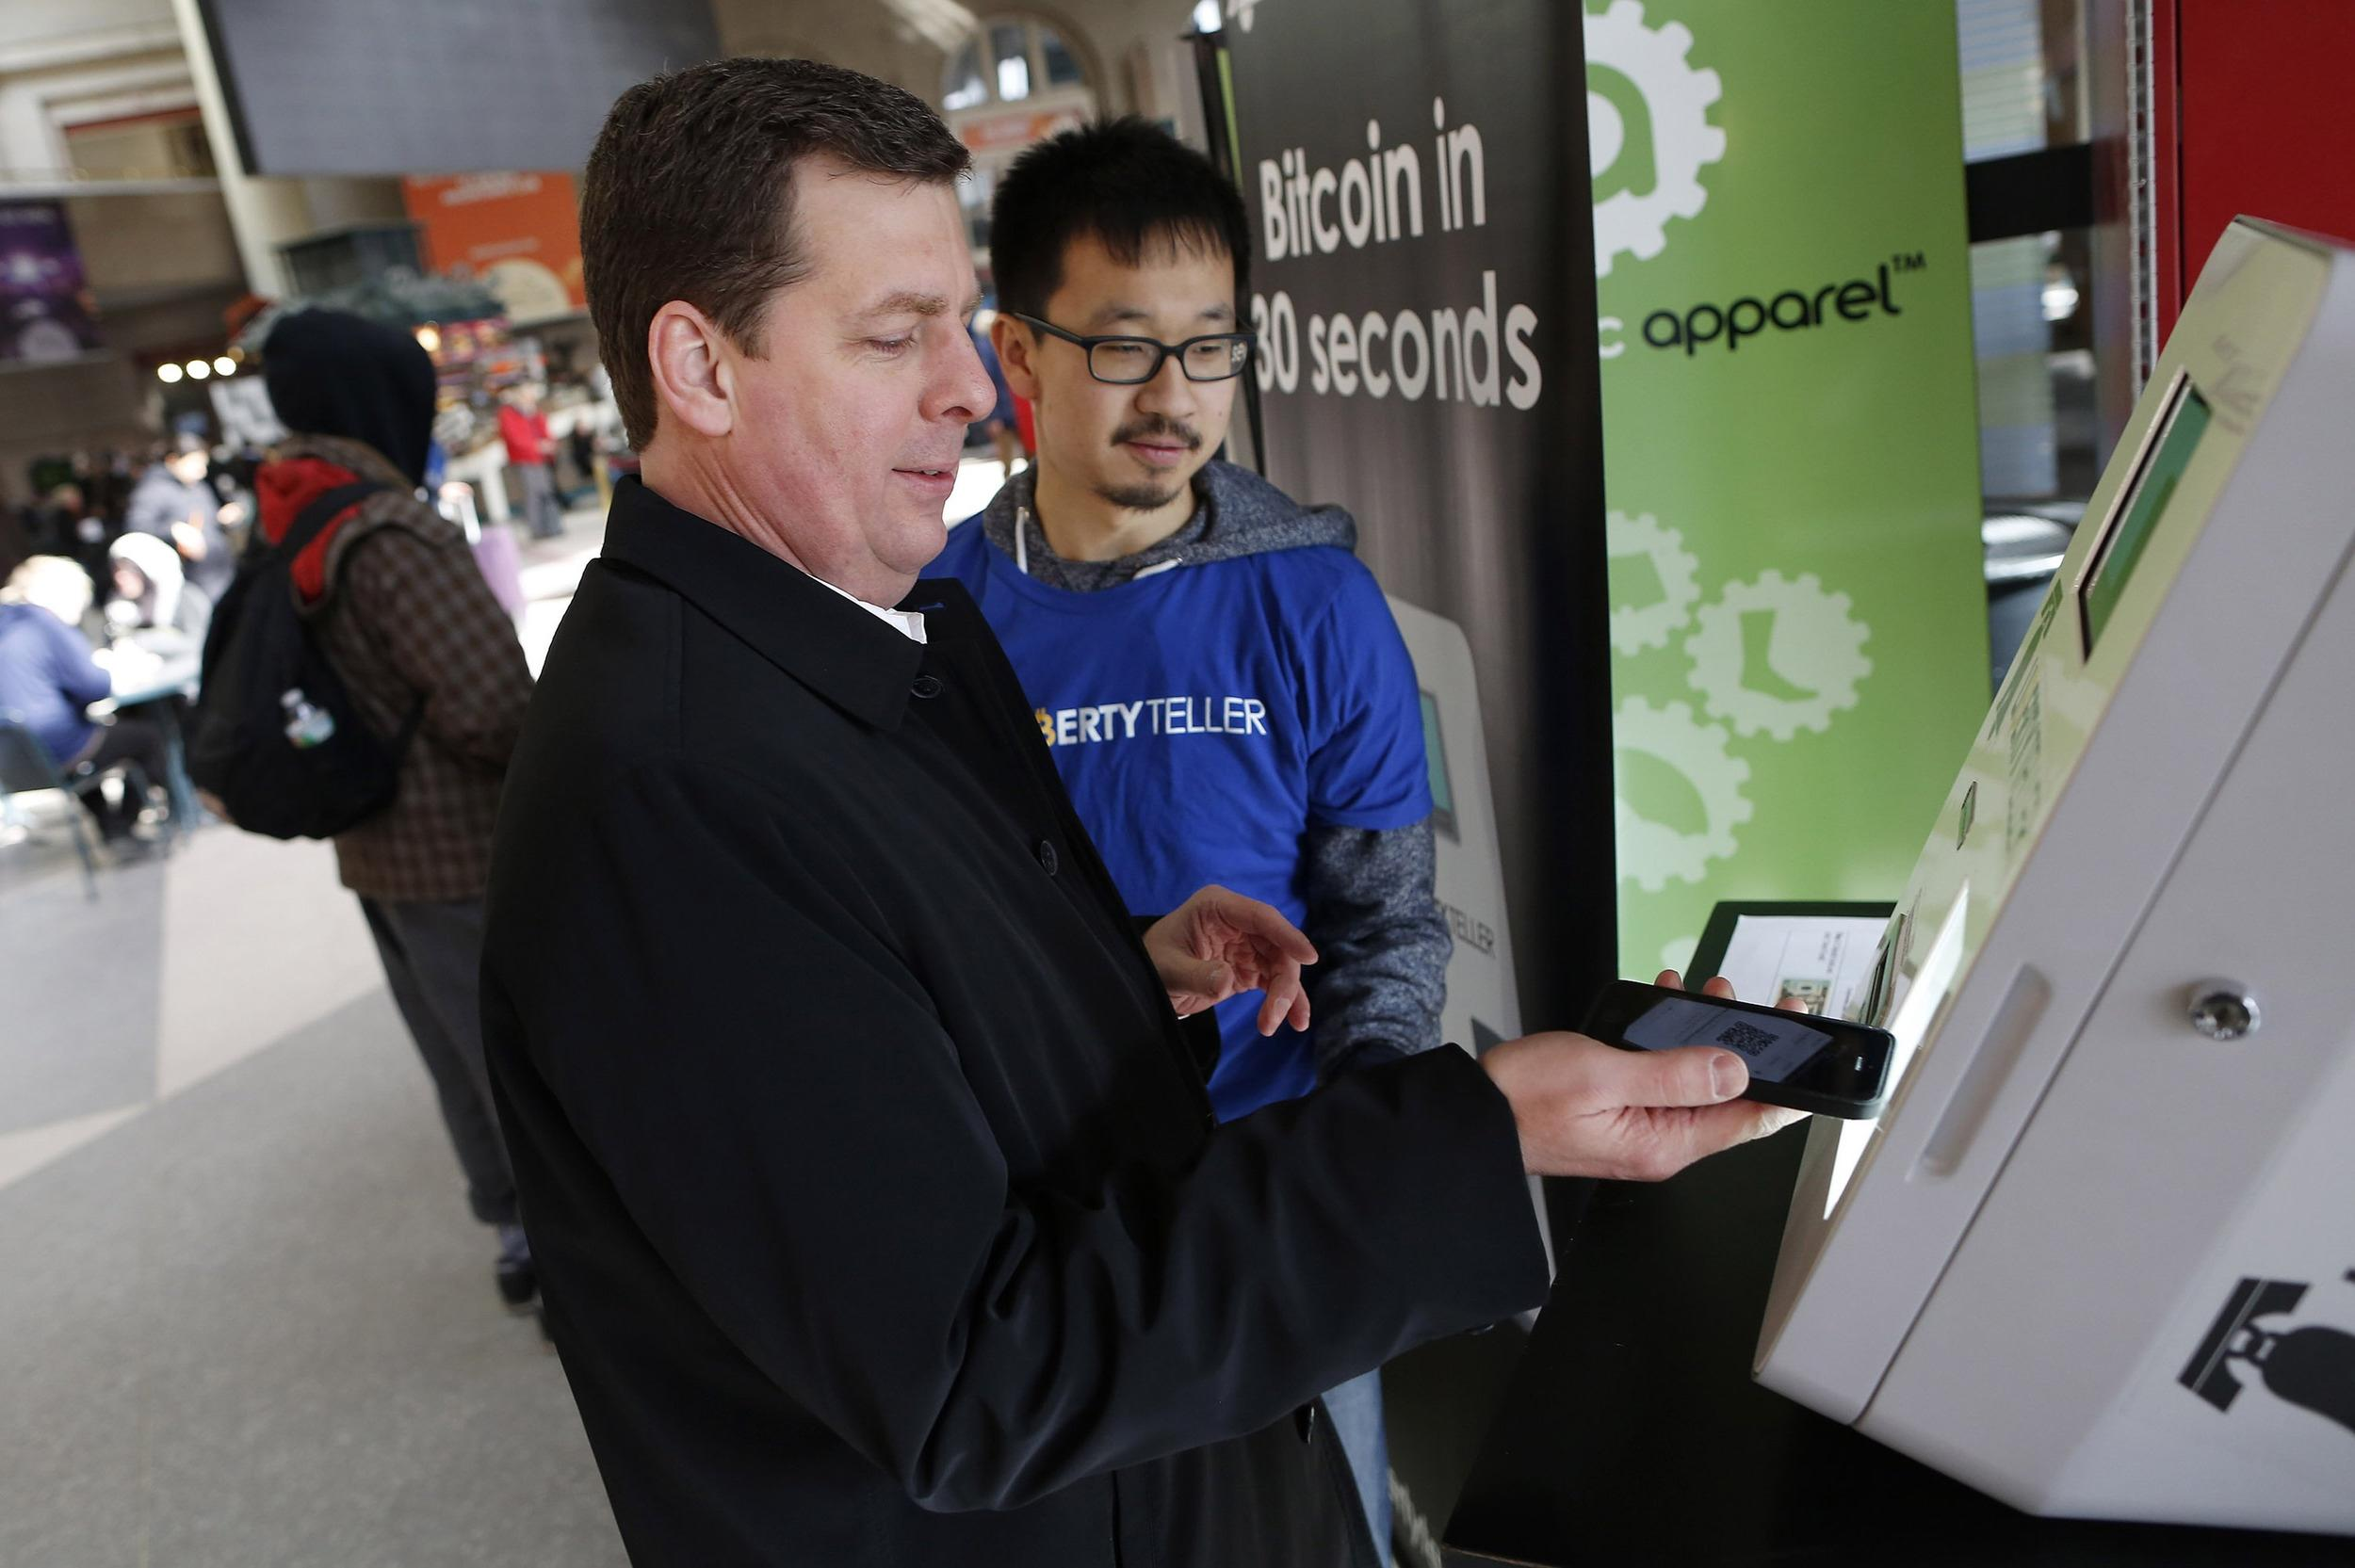 Image: Dave Mitchell purchases bitcoin at the Liberty Teller kiosk at South Station in Boston